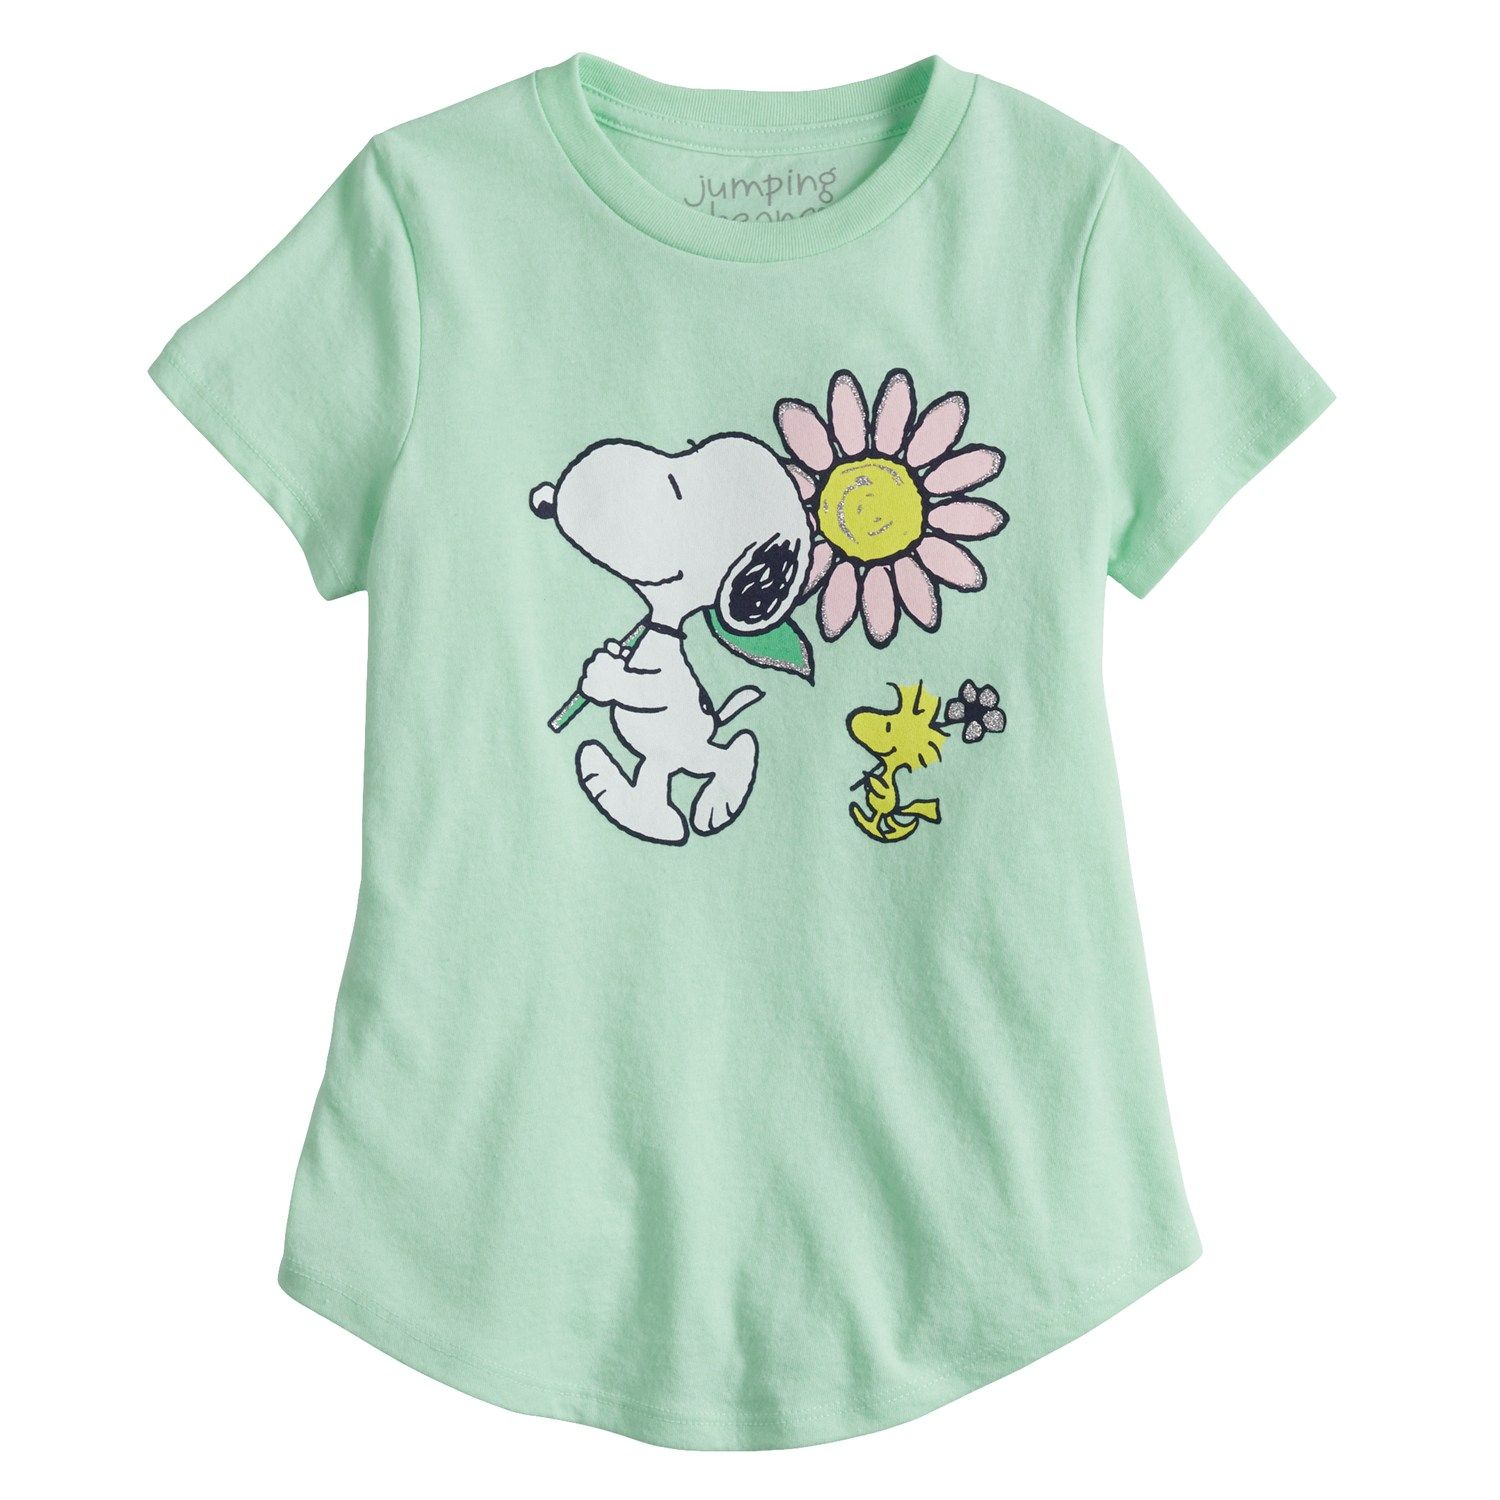 711f55aa Girls 4-6x Jumping Beans? Snoopy Graphic Tee | Old Fashion Home ...